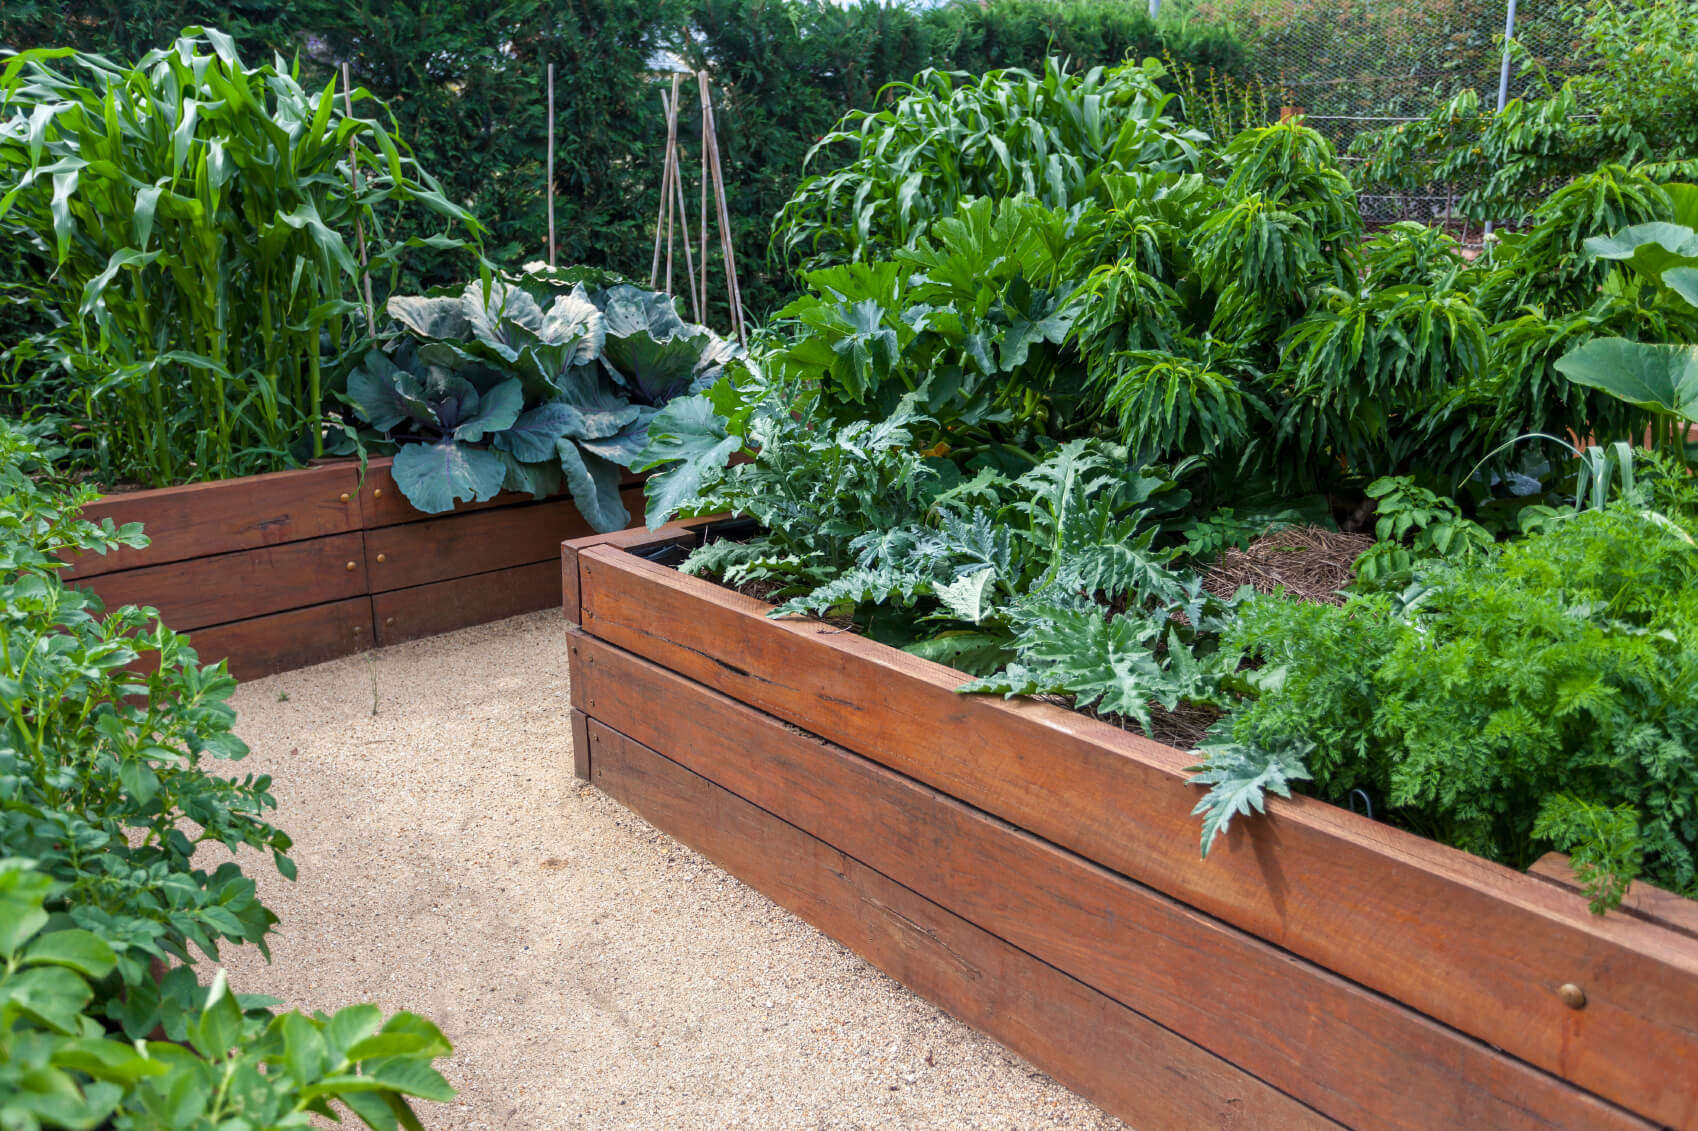 41 Backyard Raised Bed Garden Ideas for 12 Awesome Tricks of How to Craft Backyard Garden Bed Ideas